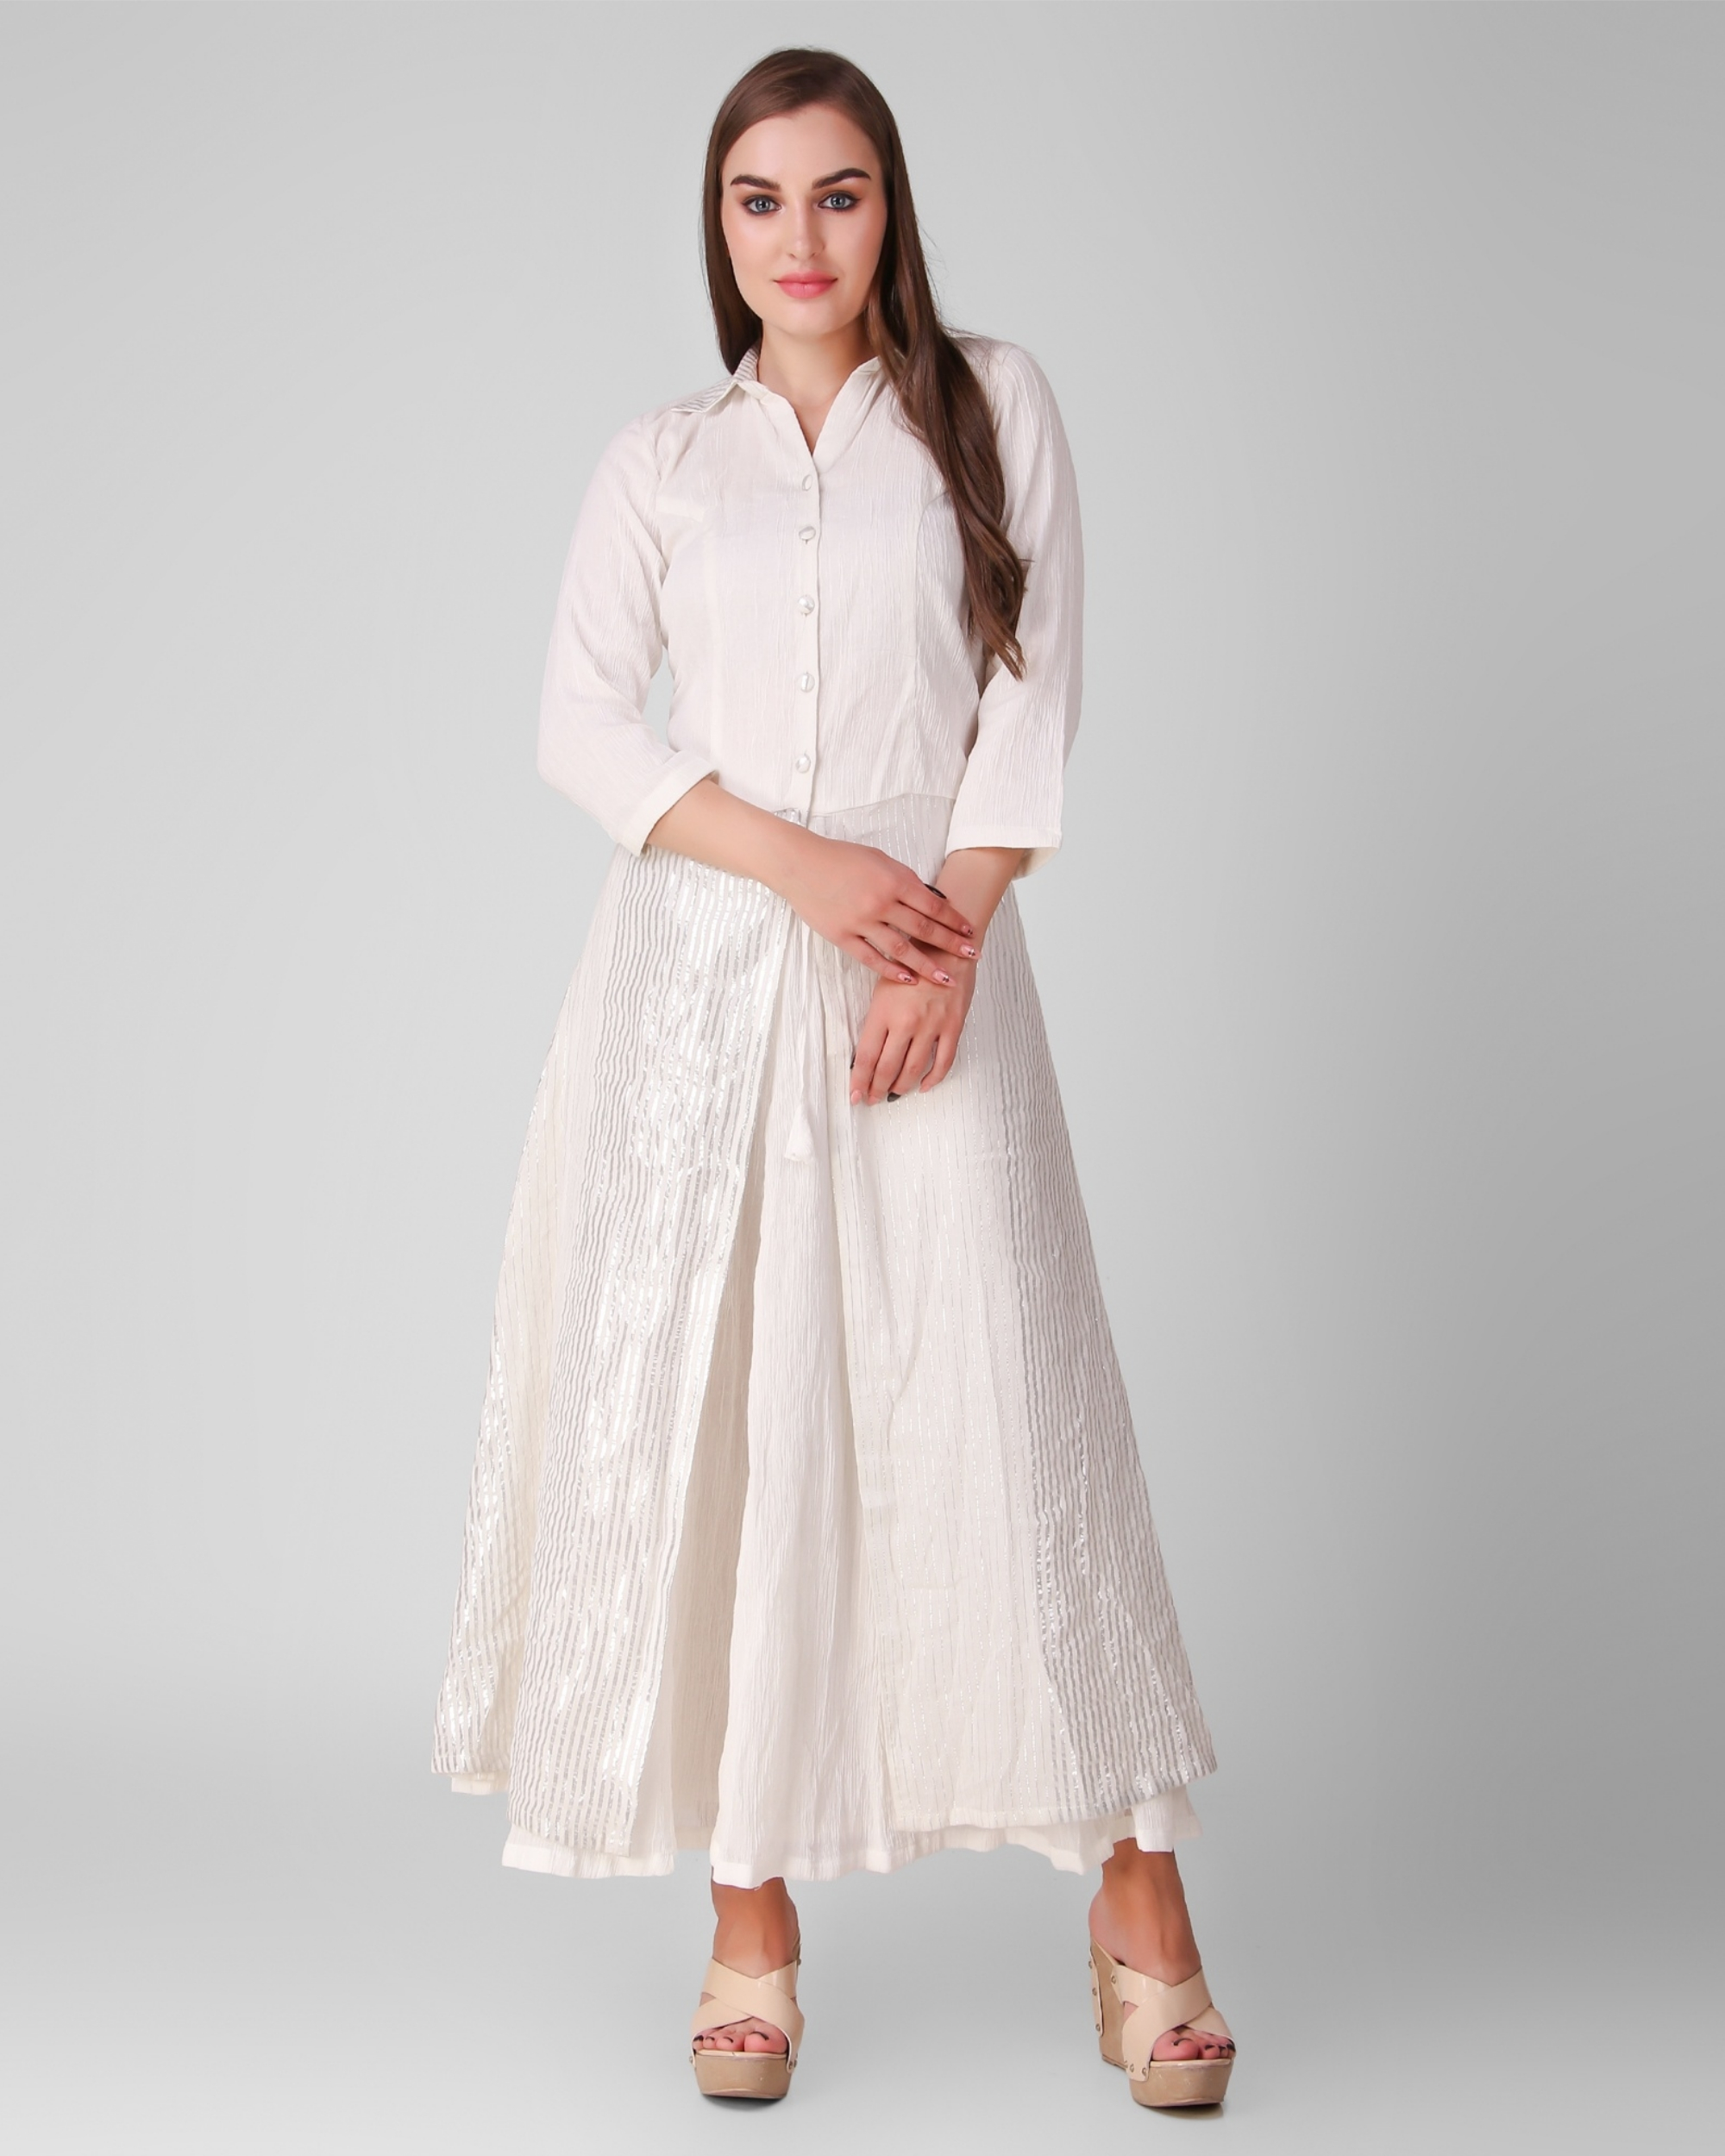 Ivory cotton crepe button down overlay with skirt - set of two